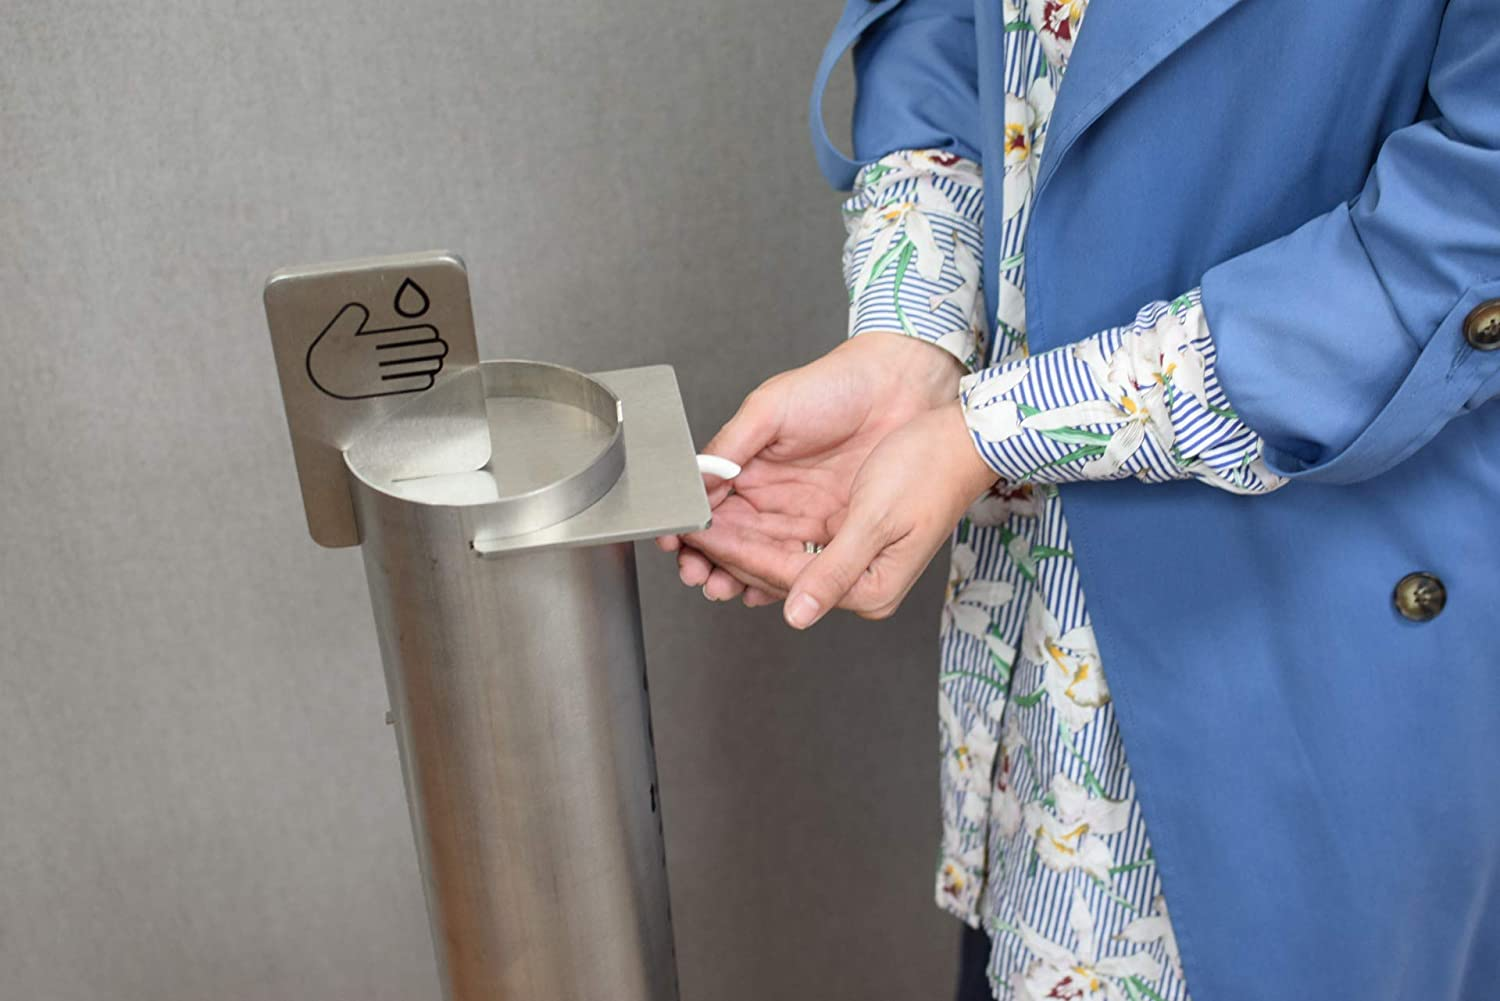 no contact with hands Po/ço Foot Operated Hand Sanitizer Dispenser hygienic durable /& robust